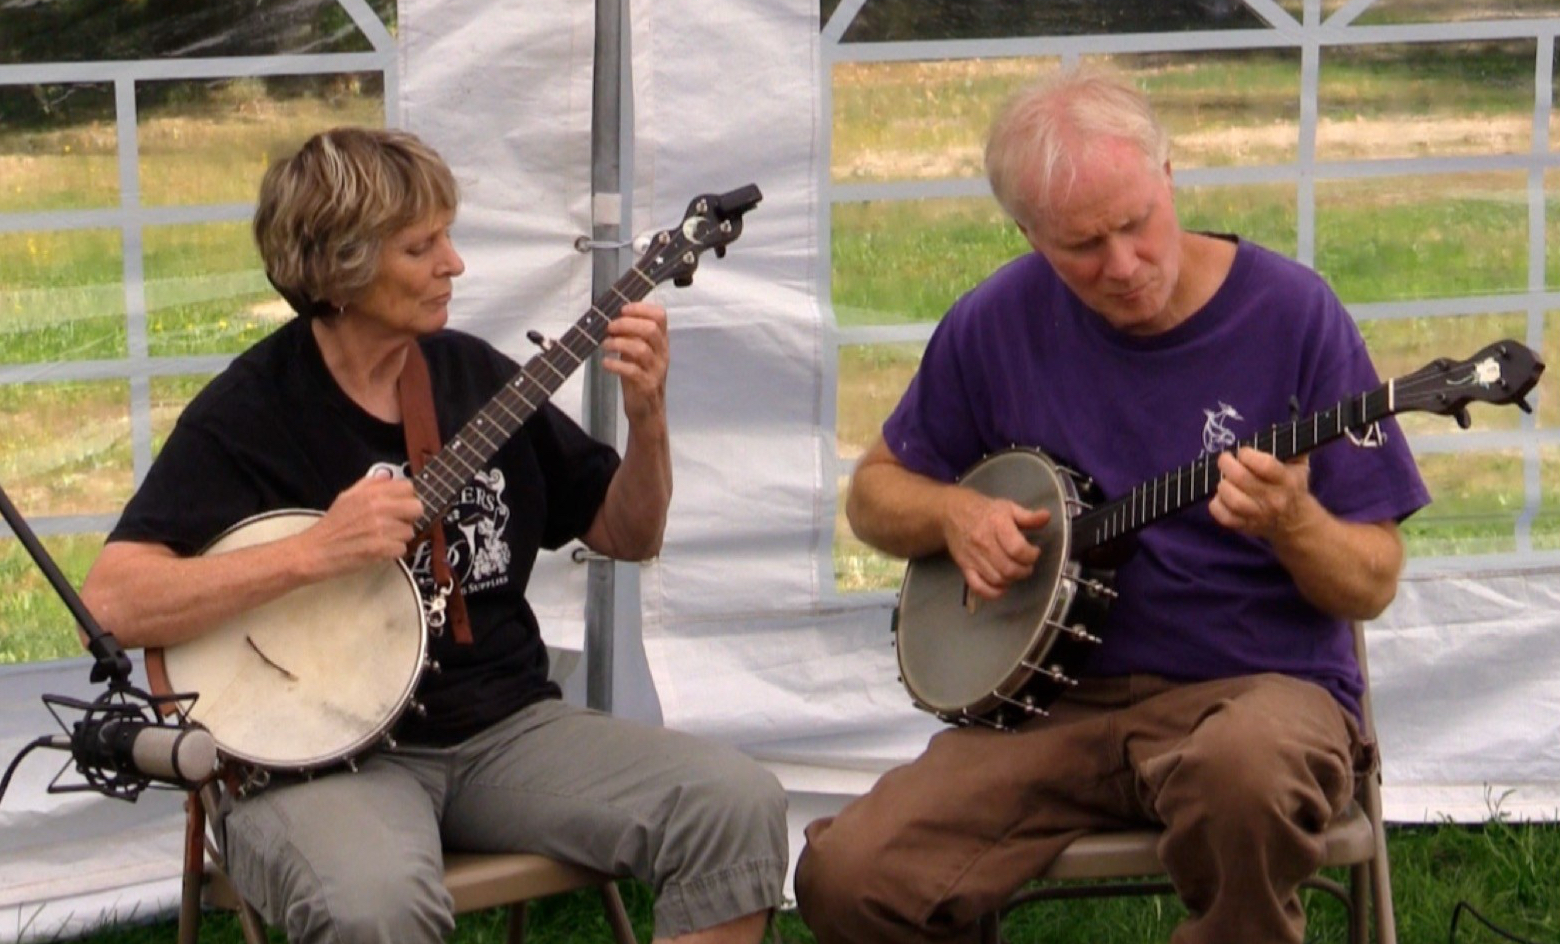 Banjo players